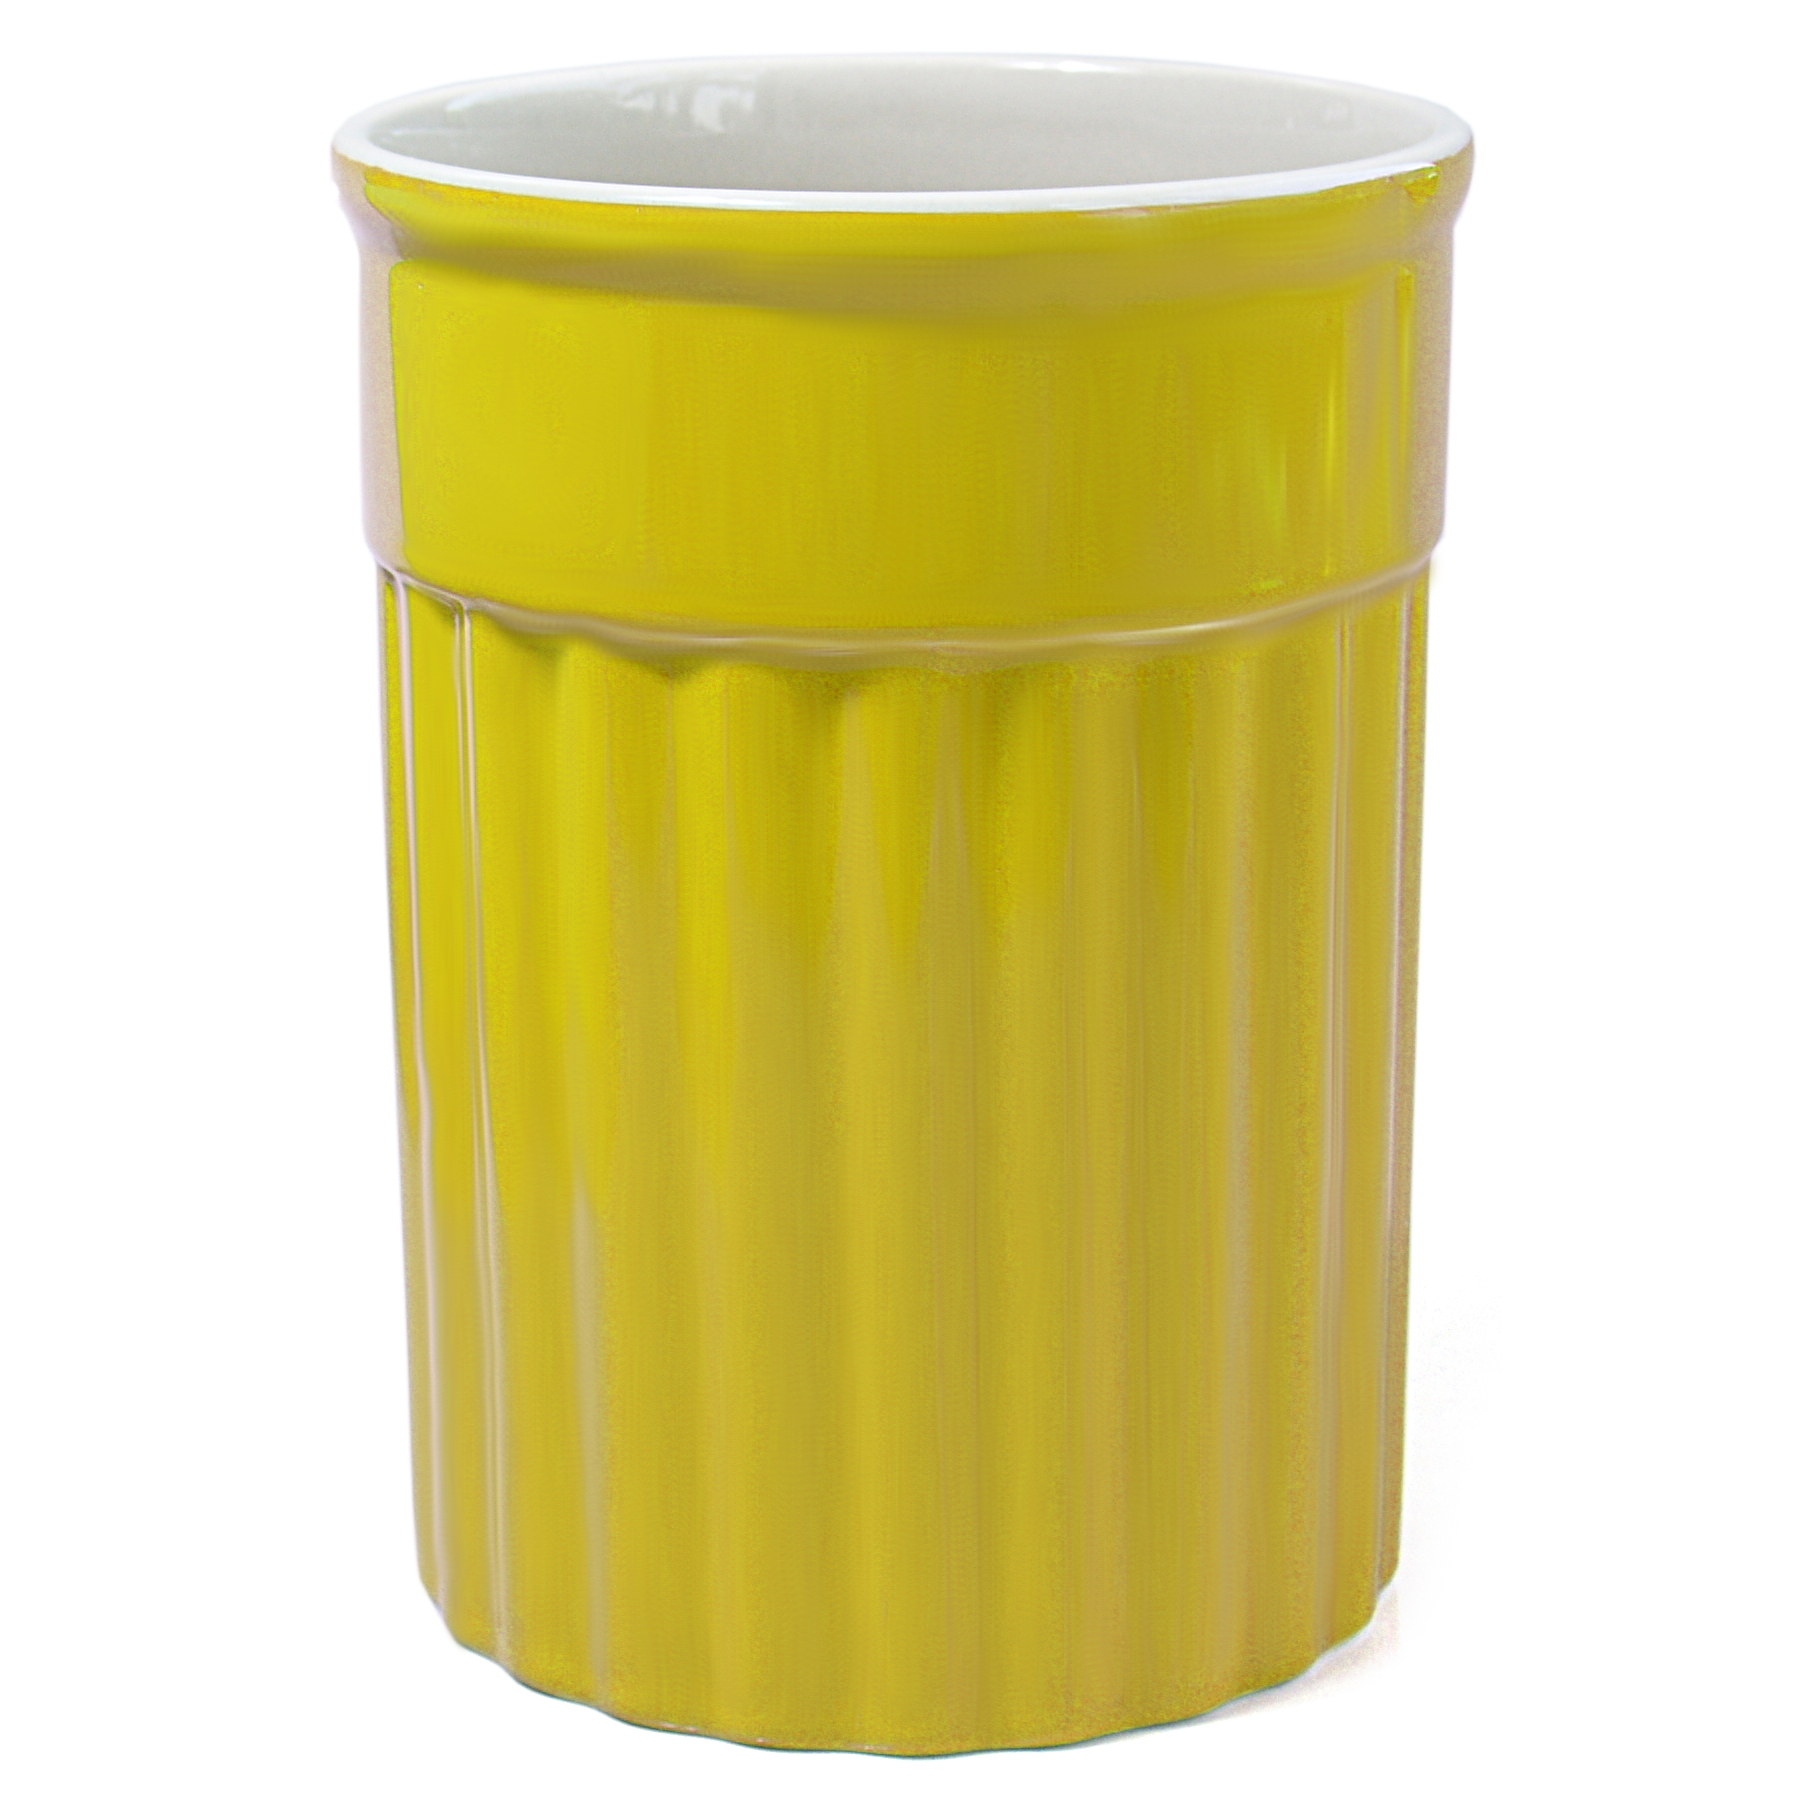 Omniware Simsbury Yellow Ceramic Utensil Holder